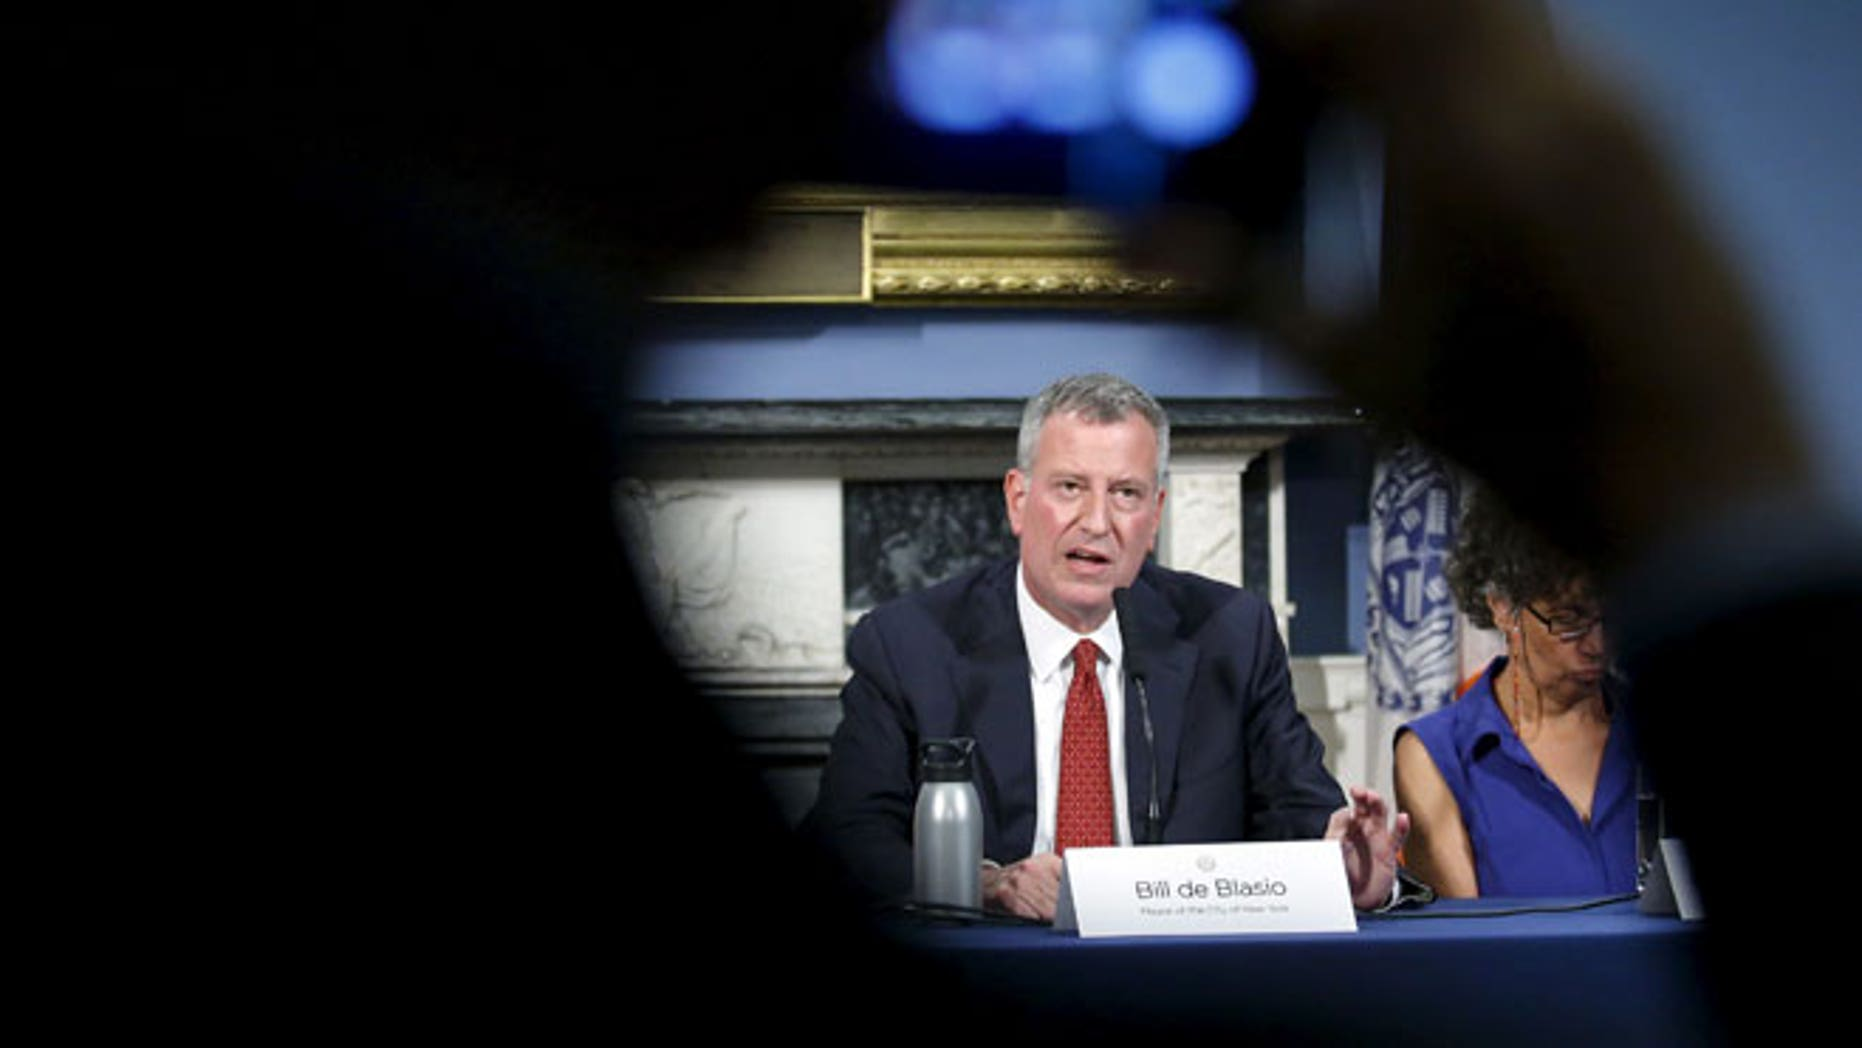 New York City Mayor Bill de Blasio speaks to the media during a news conference to introduce legislation intended to reduce the risk of Legionnaires' disease in New York August 10, 2015.